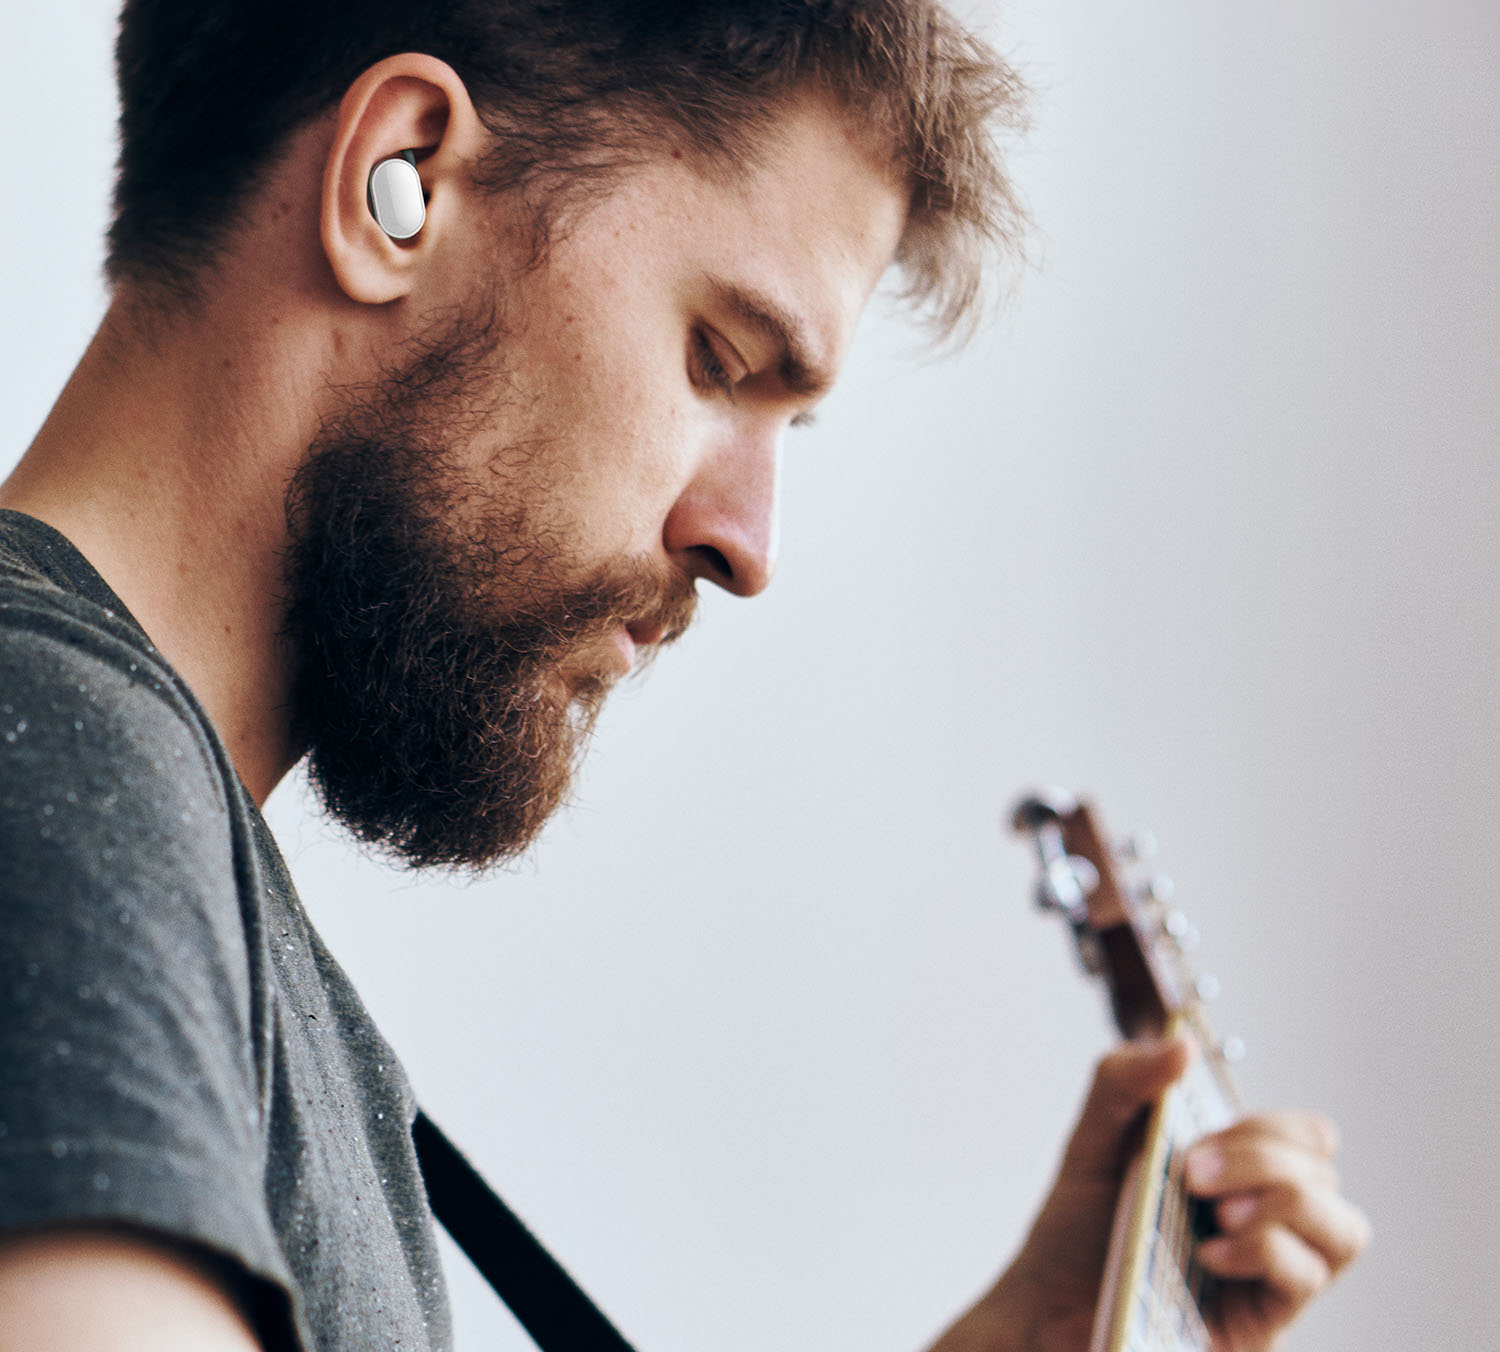 A man playing guitar with the Jack wireless earbuds in his ears